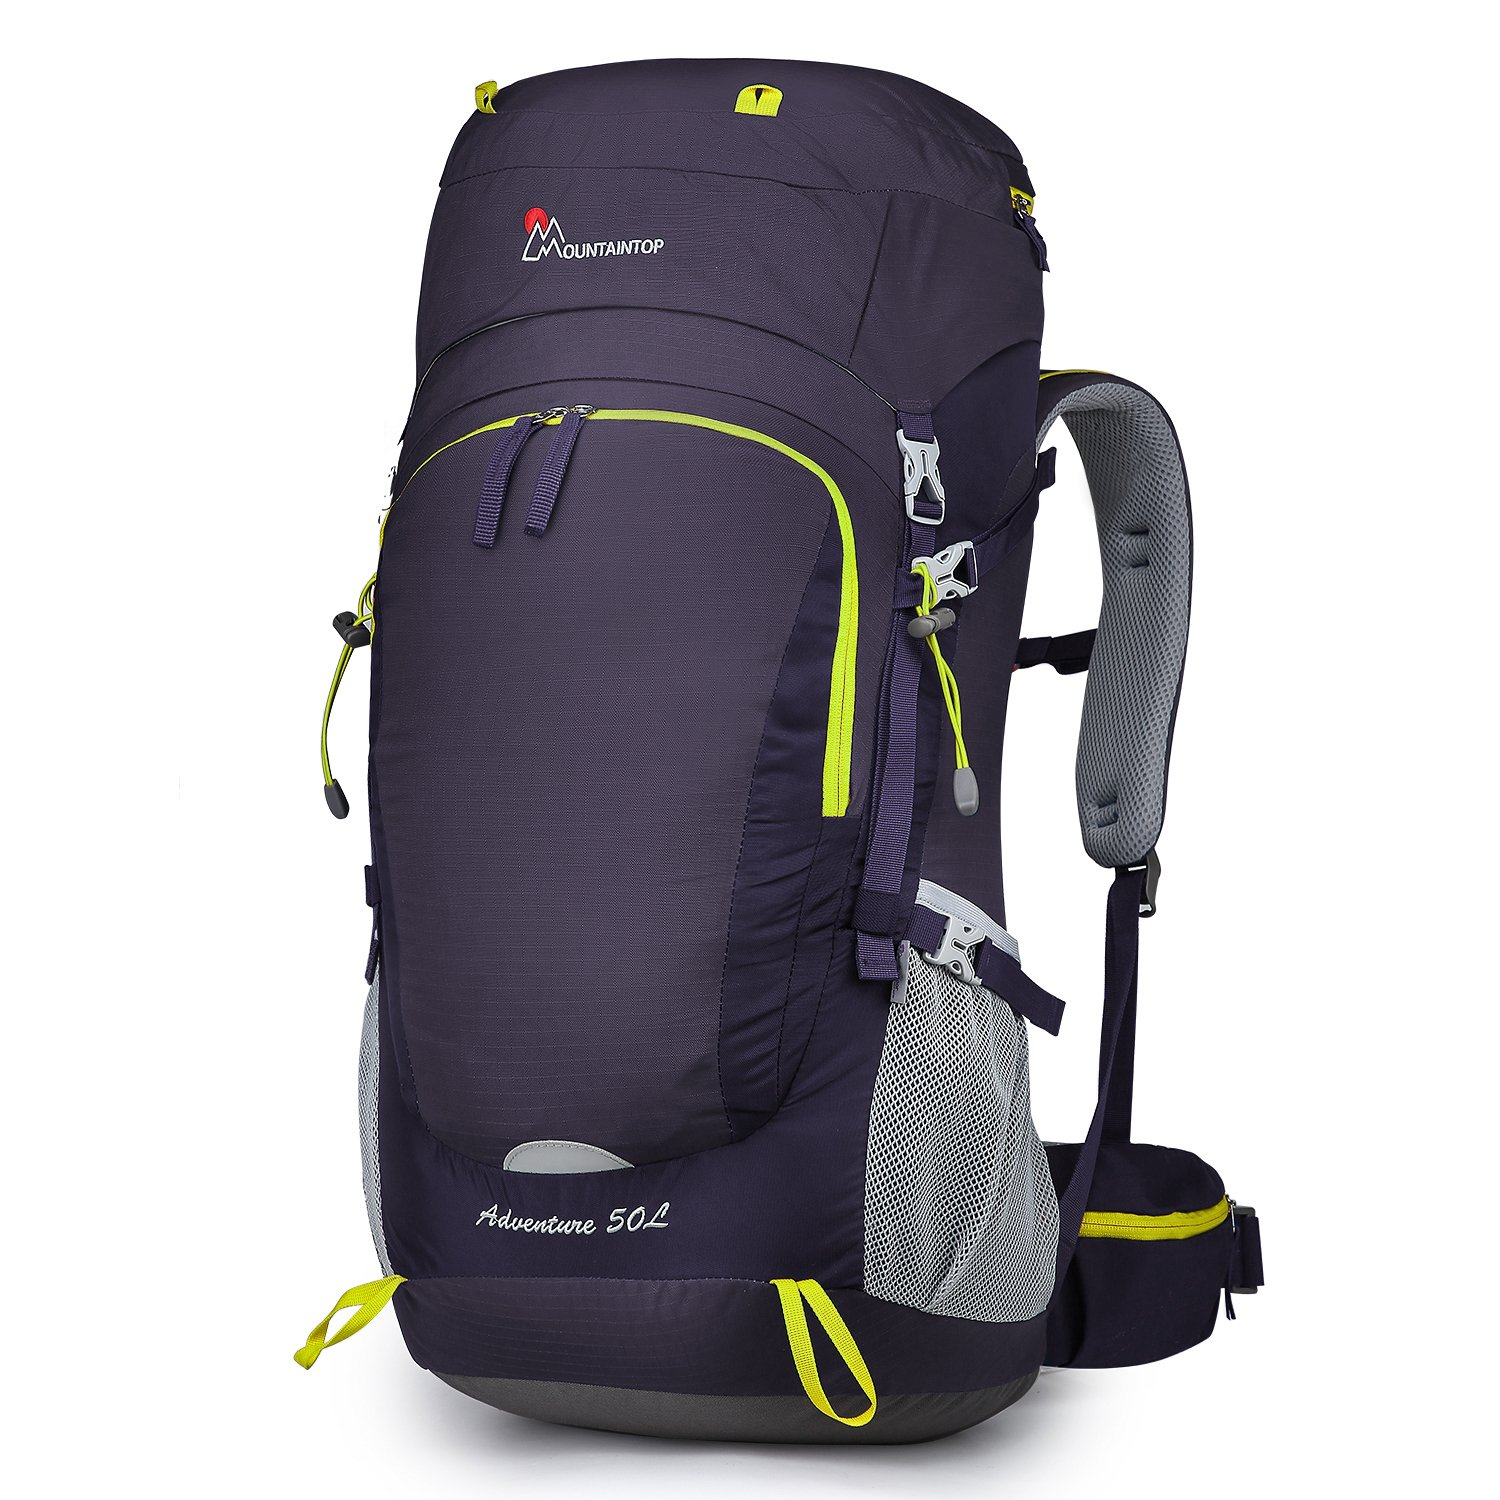 Mountaintop 50L Hiking Backpack with Rain Cover LTD